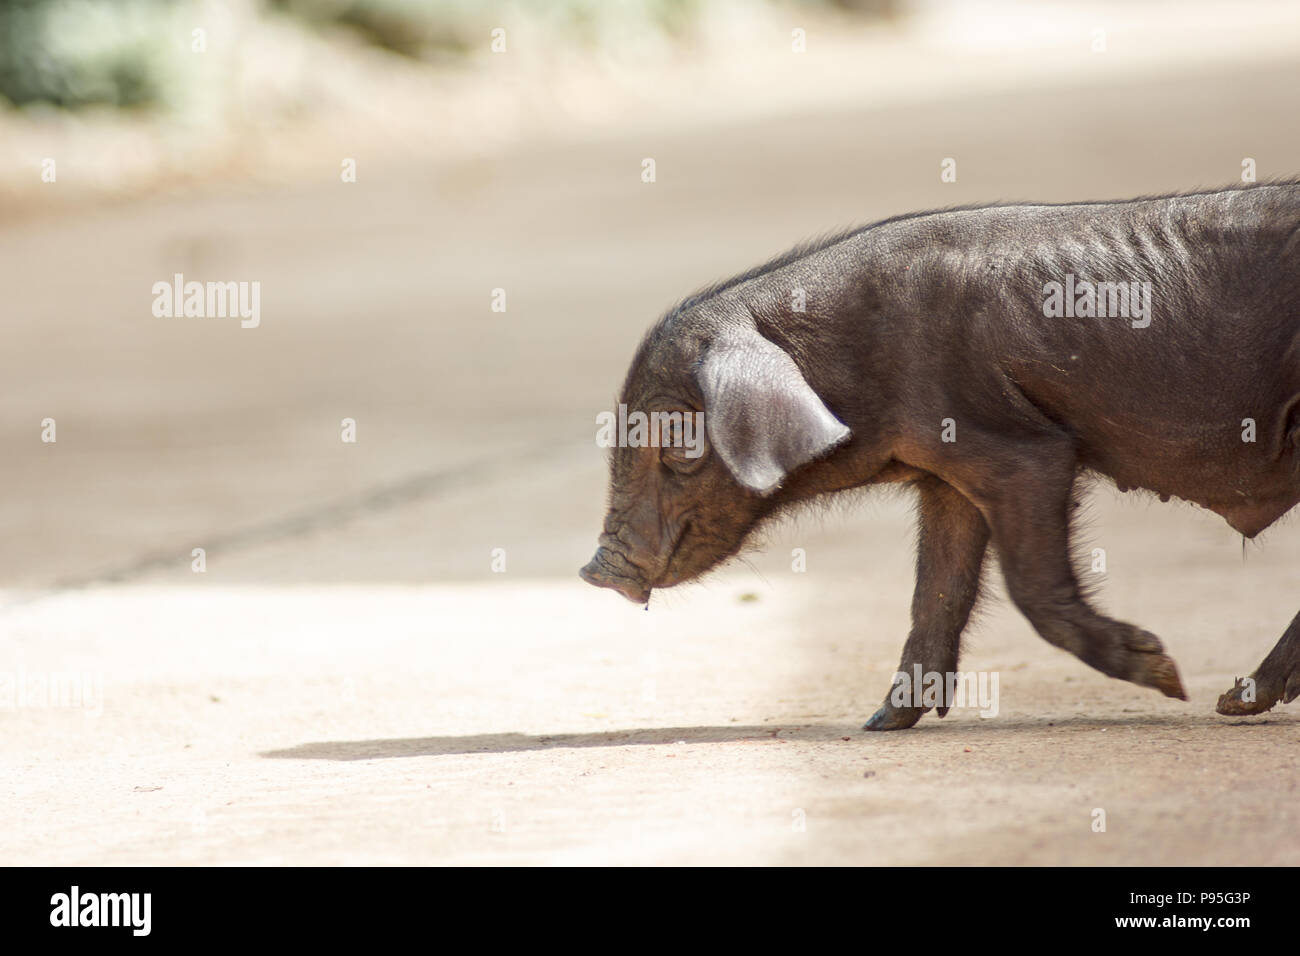 The boar is walking on the ground. - Stock Image